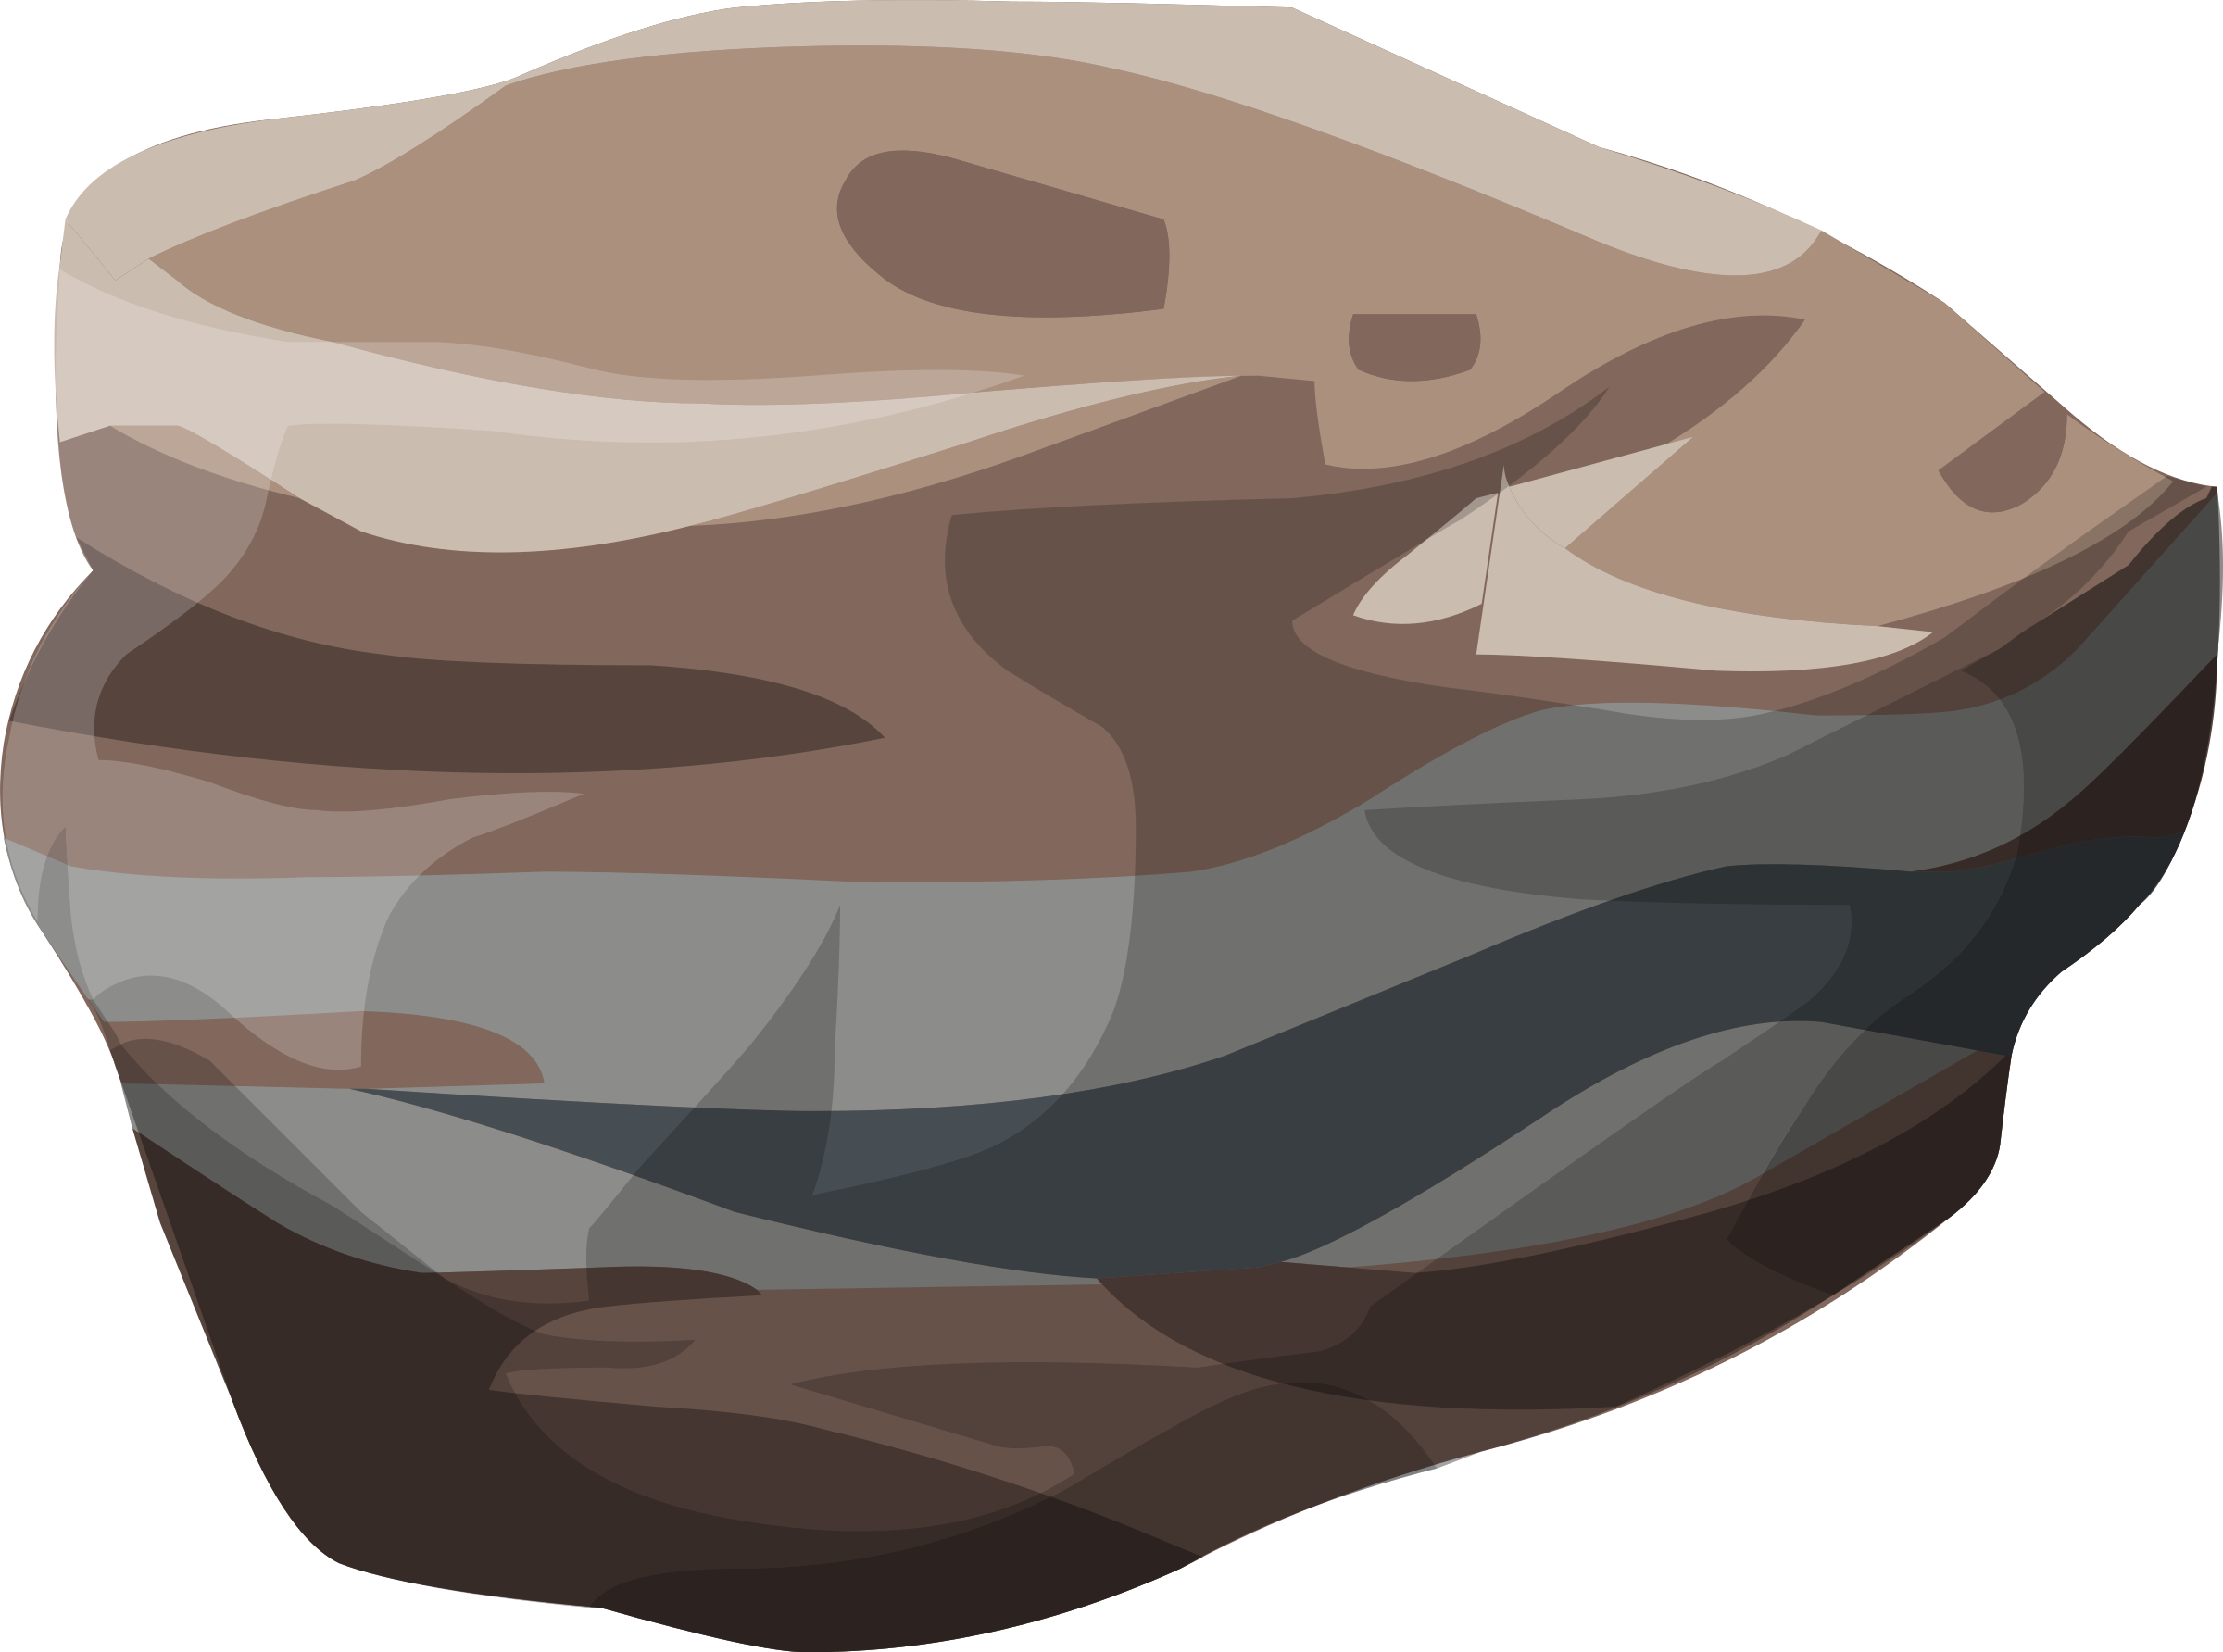 Clipart misc petrified rock small.